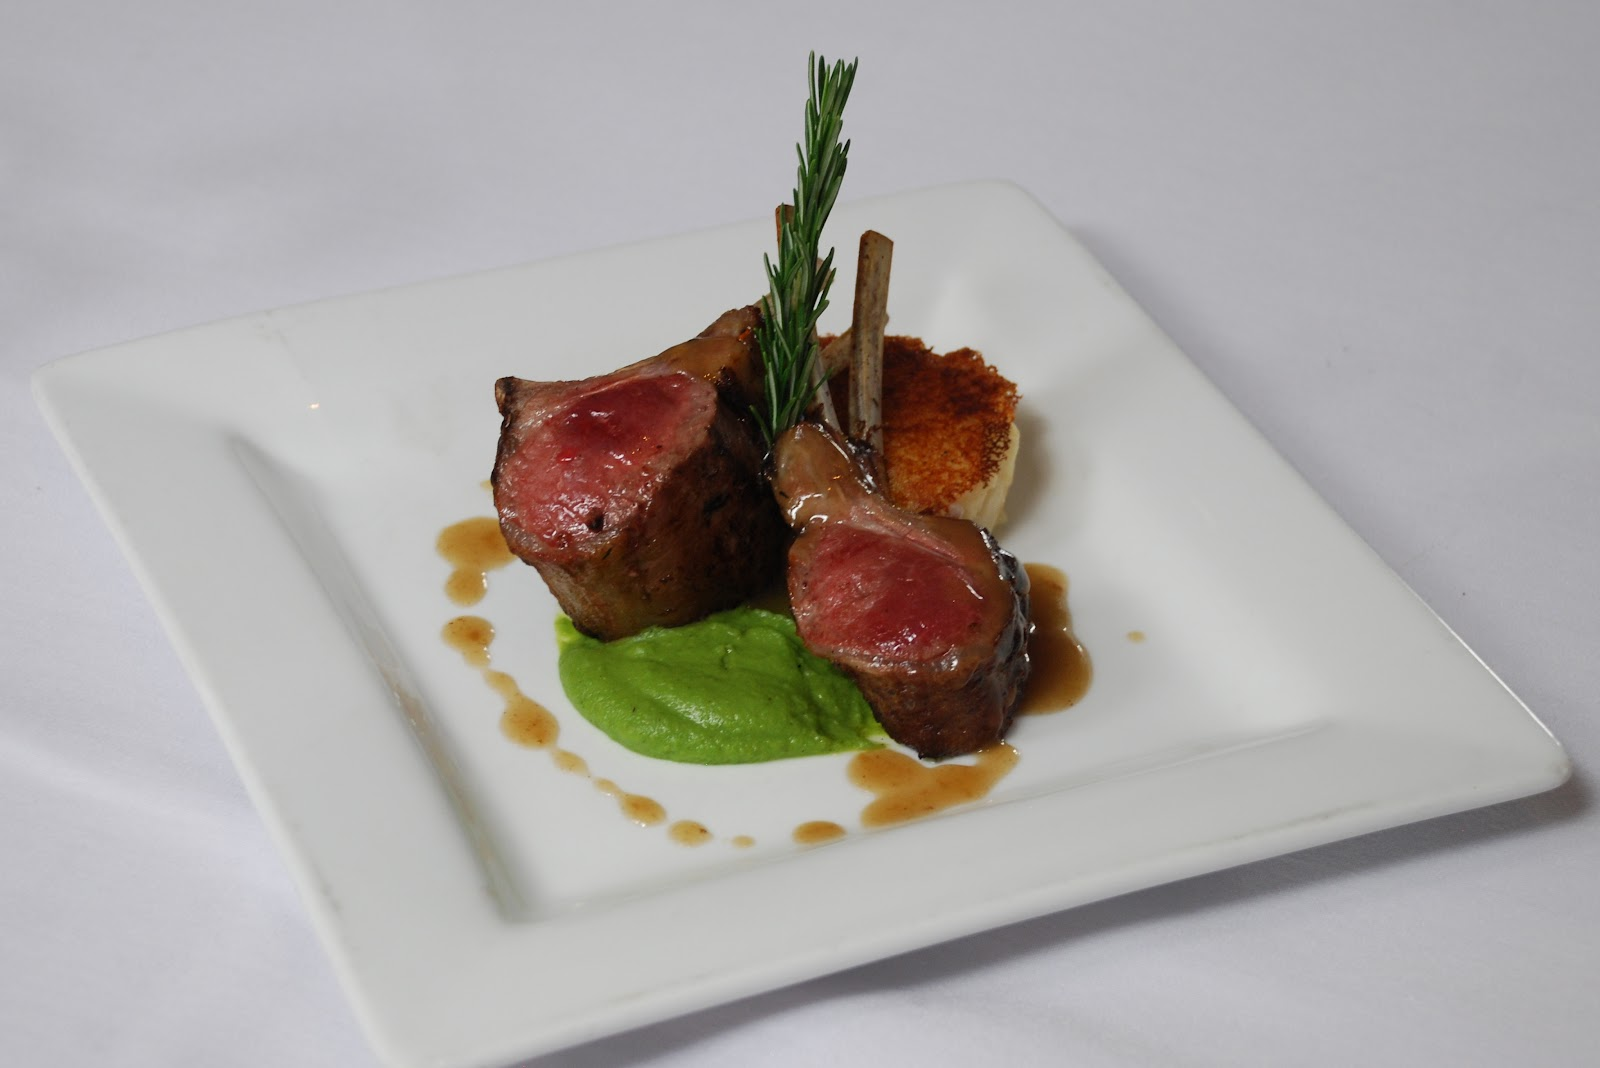 ... rack of lamb recipe d artagnan rack of lamb presentation ii flickr